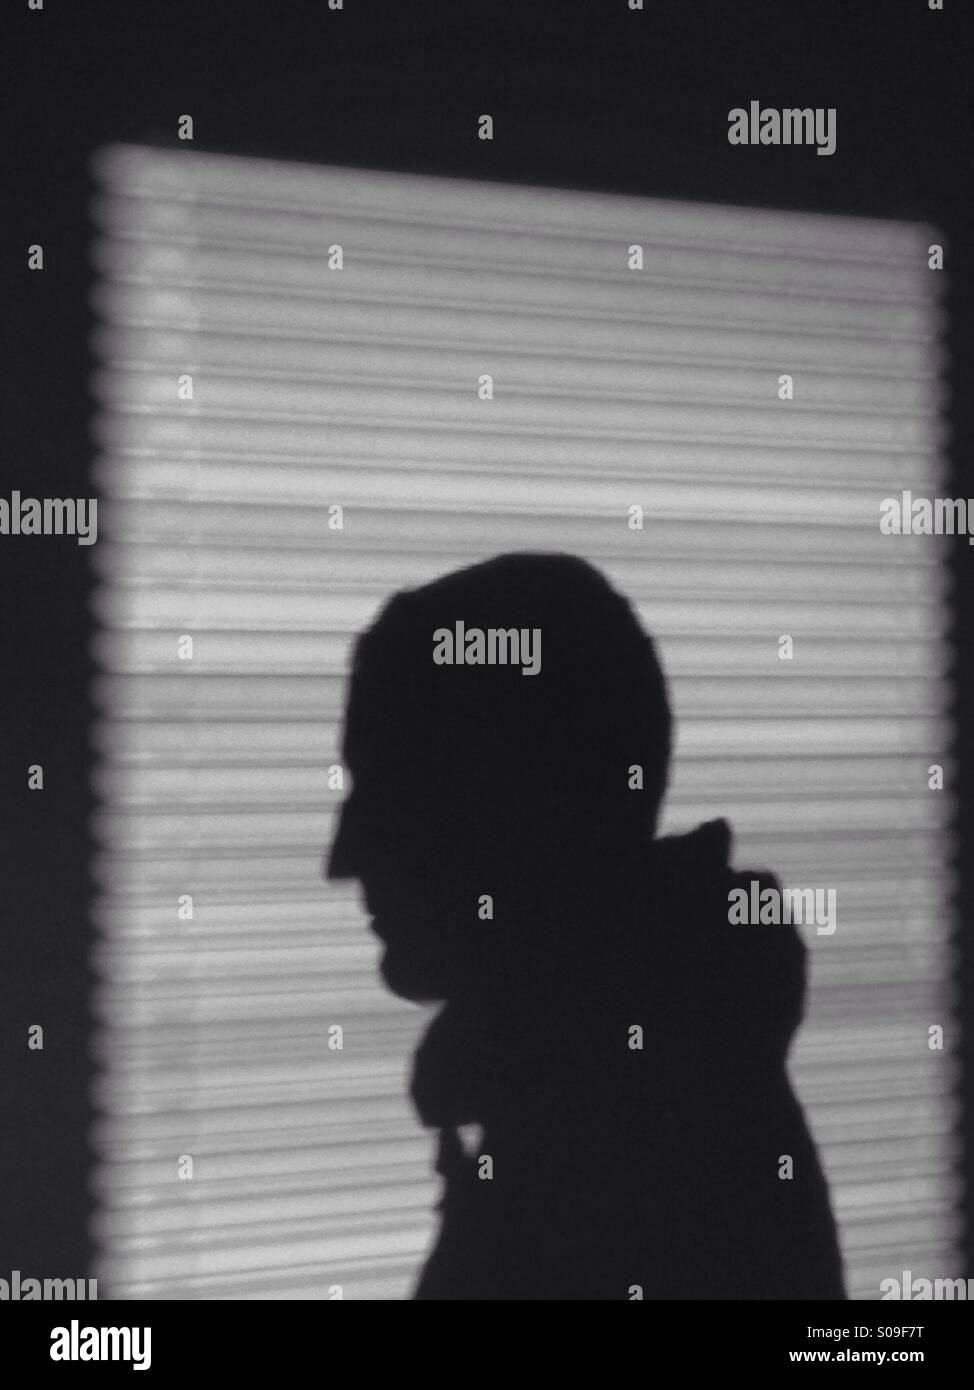 Shadow Silhouette Of A Man Window Blinds Stock Photo 309996172